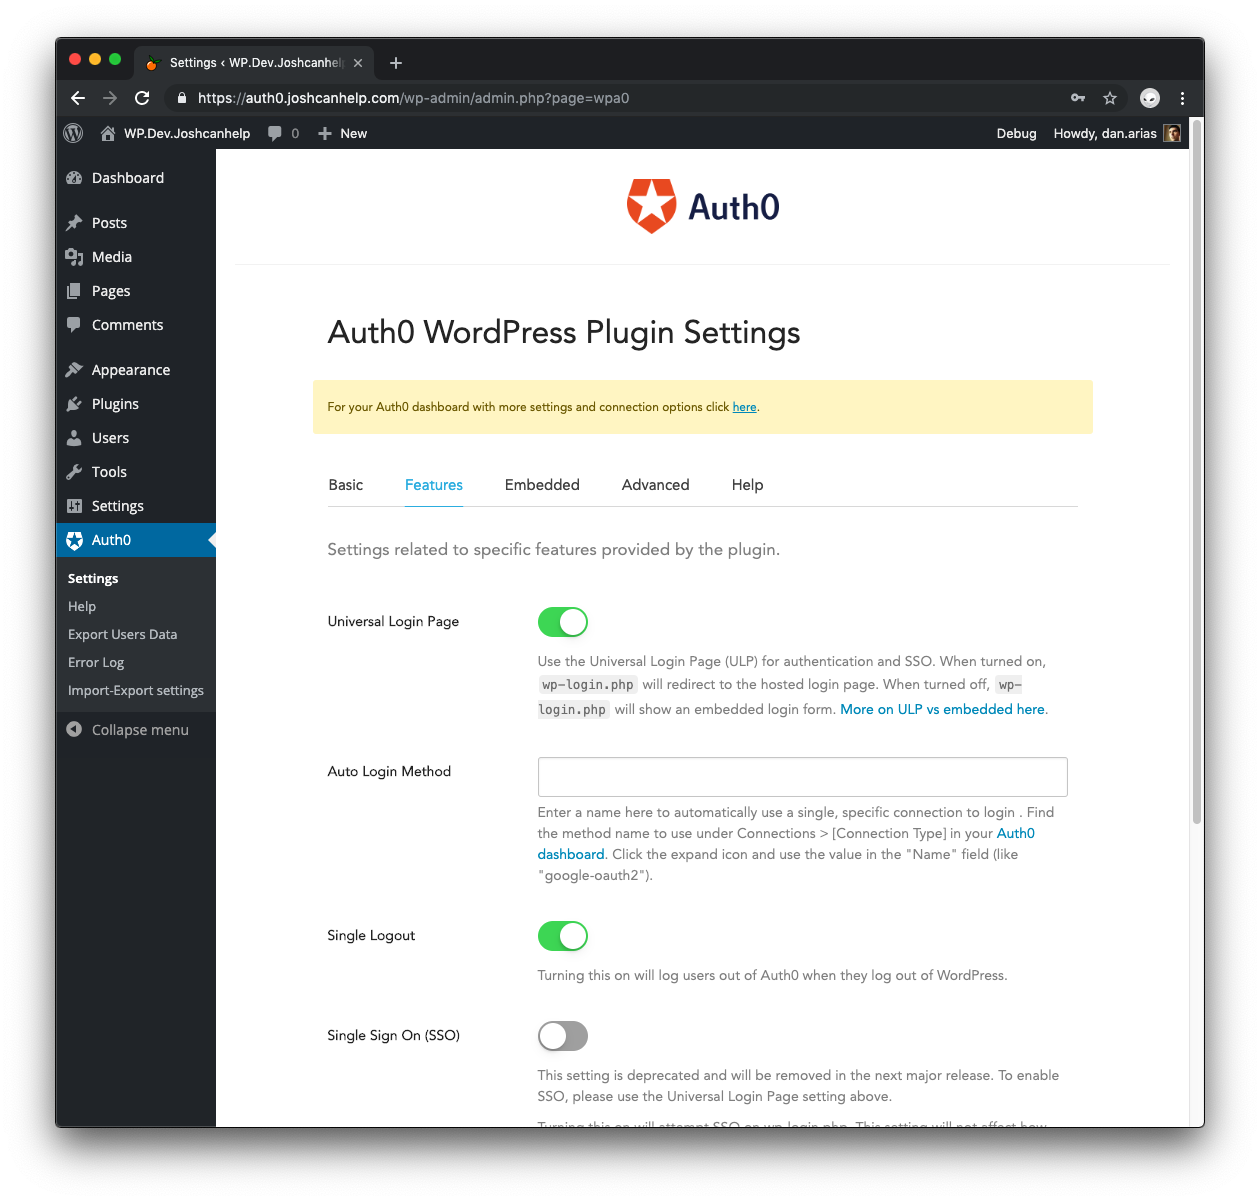 Auth0 WordPress Plugin Settings